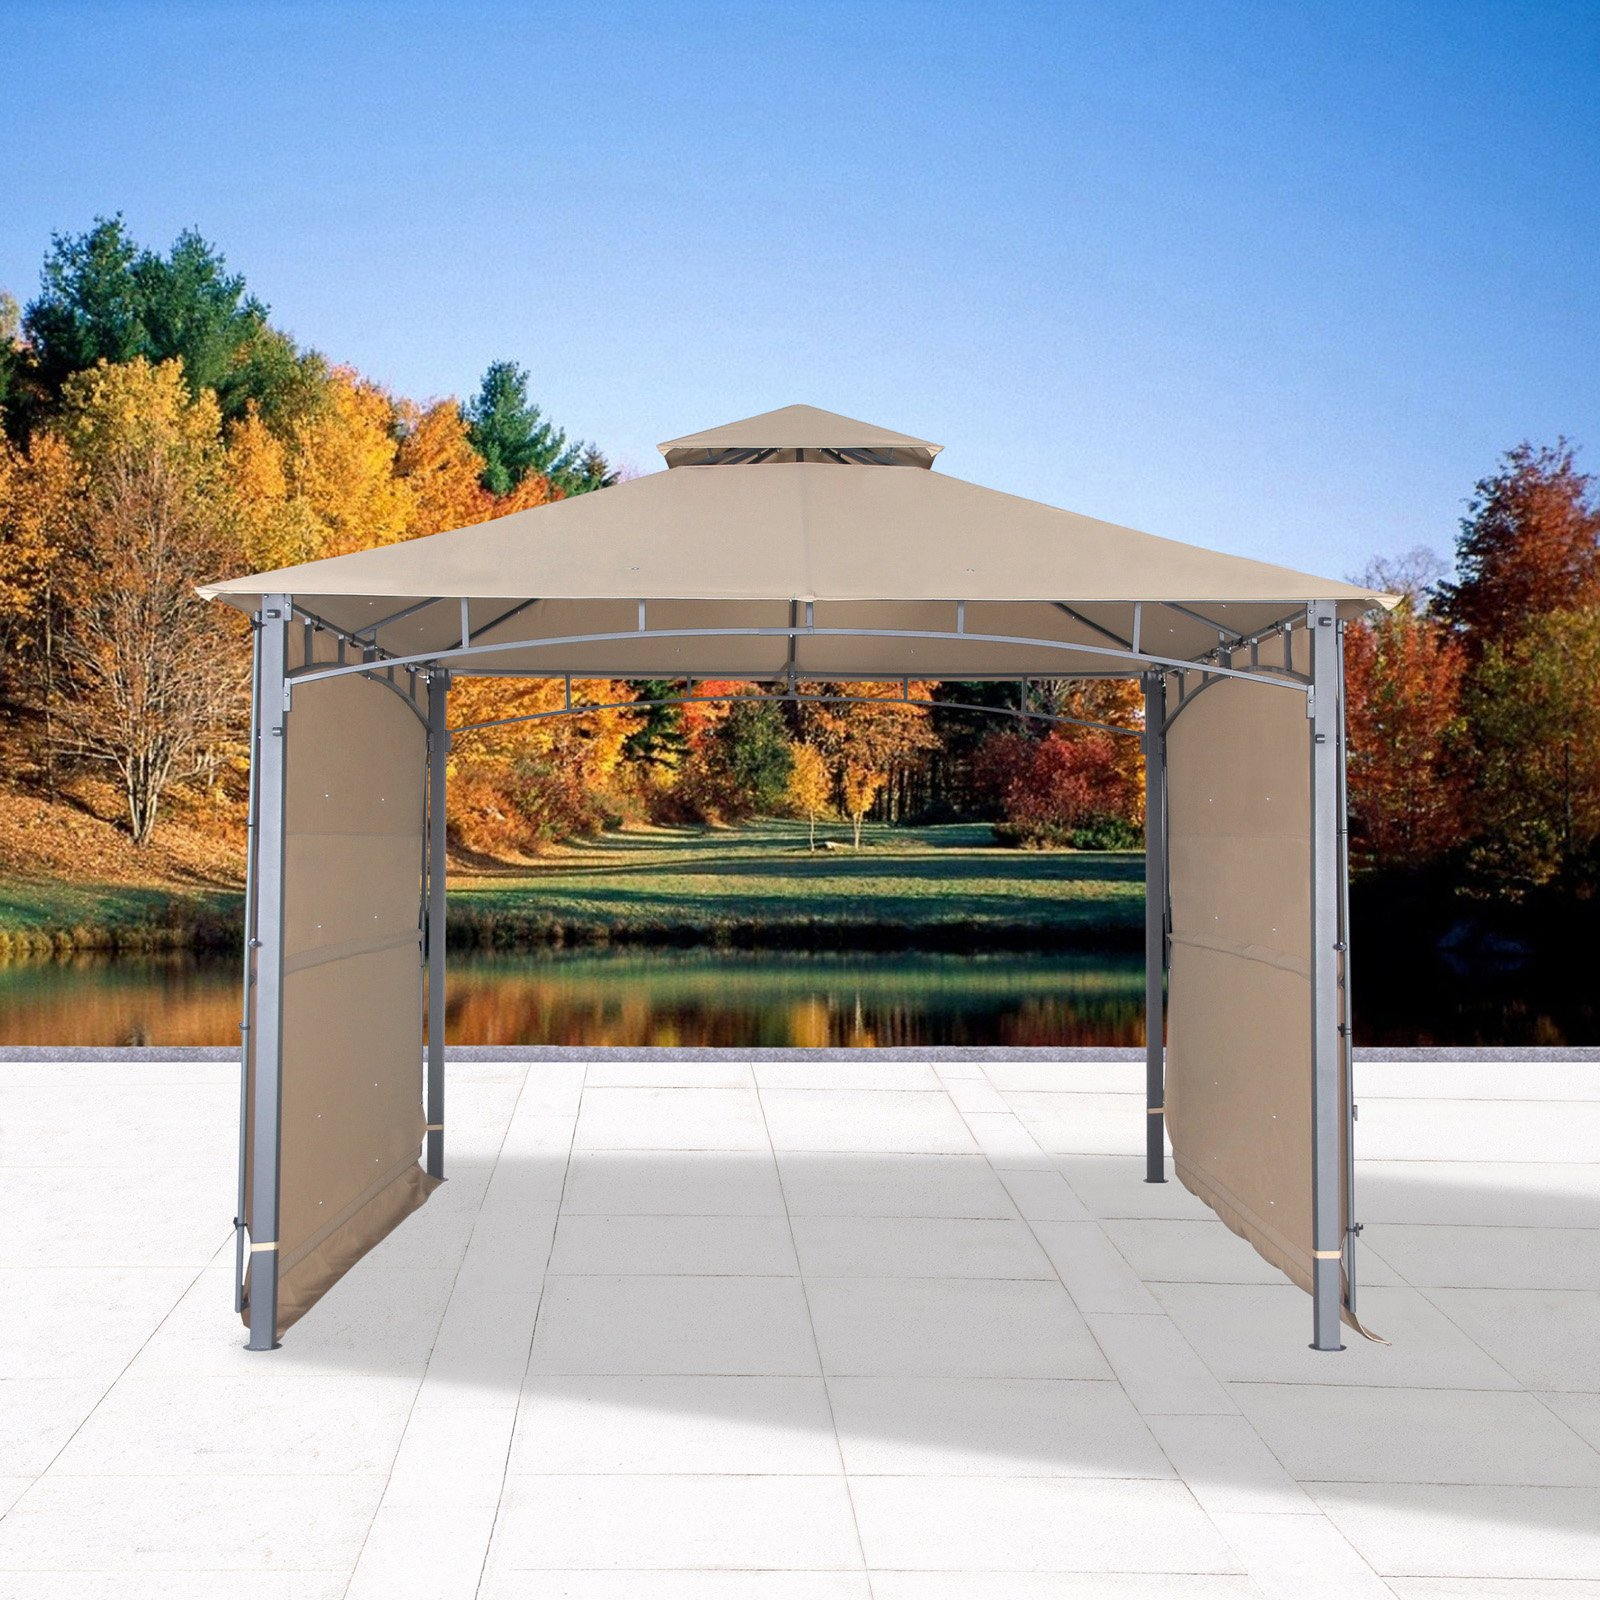 Cloud Mountain 10.83 ft. Two Tiered Gazebo Canopy with Two Side Sunshade Walls